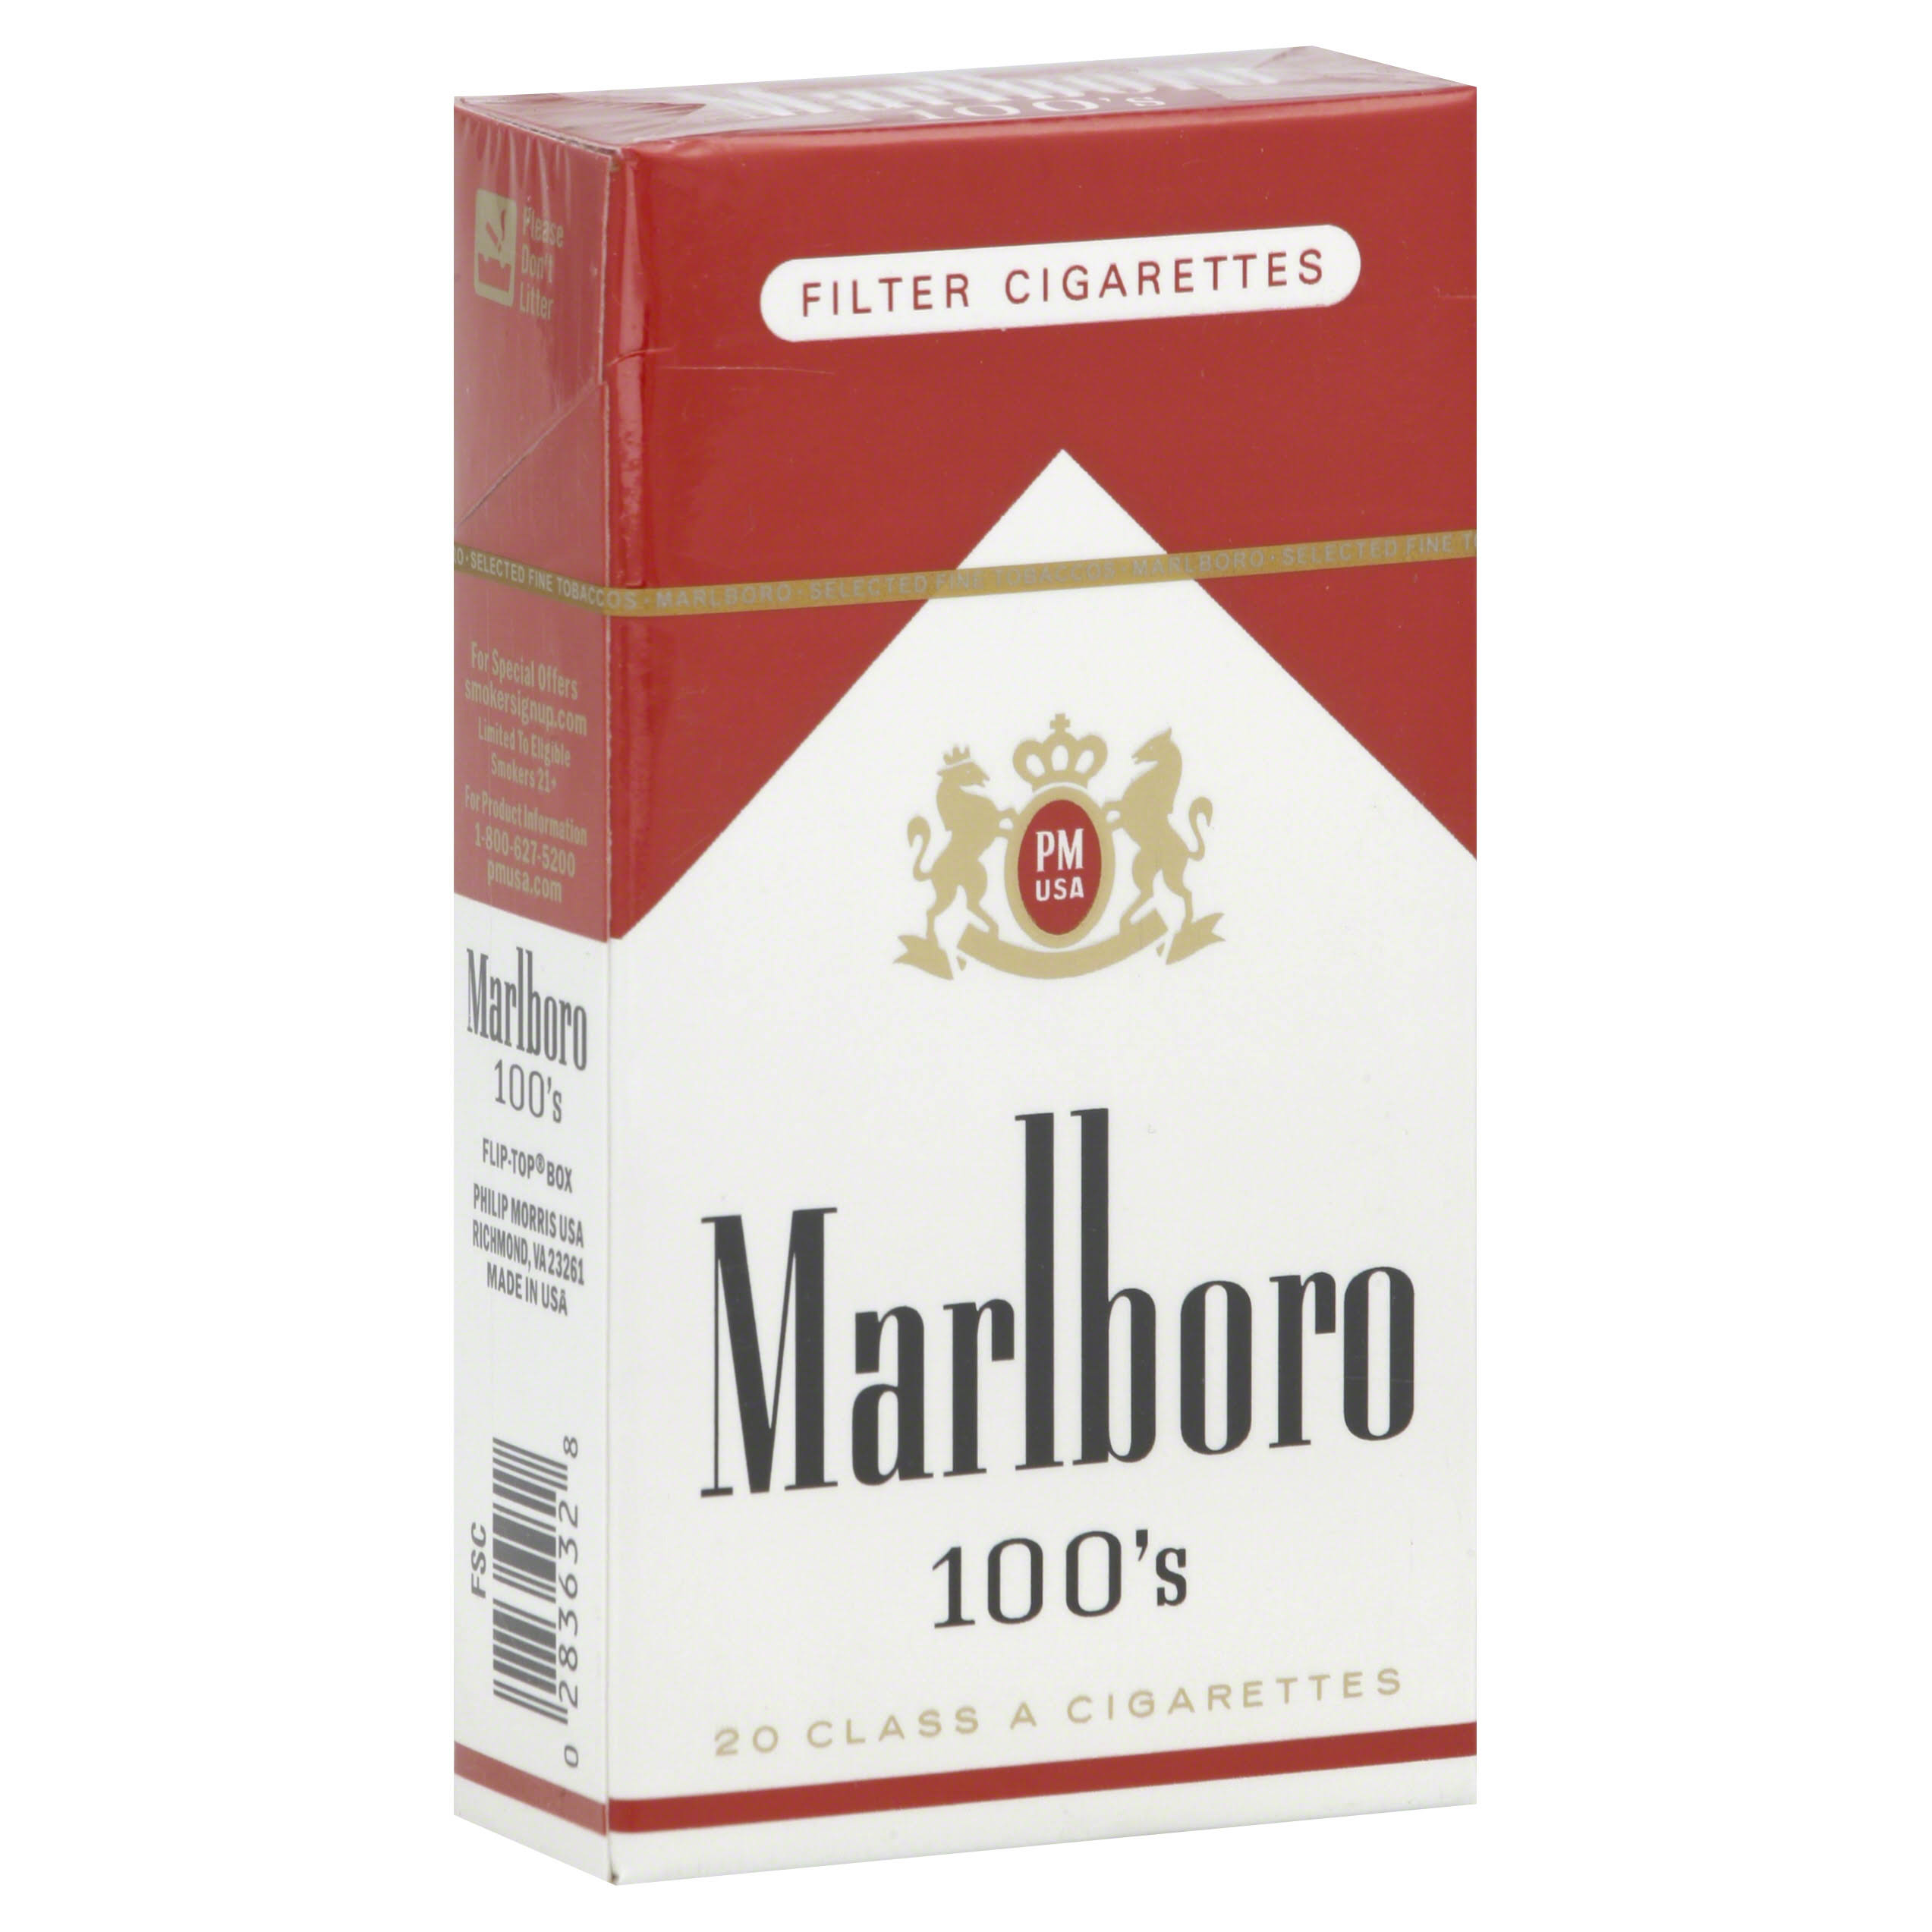 Marlboro Filter Cigarettes, 100's, Flip-Top Box - 20 cigarettes